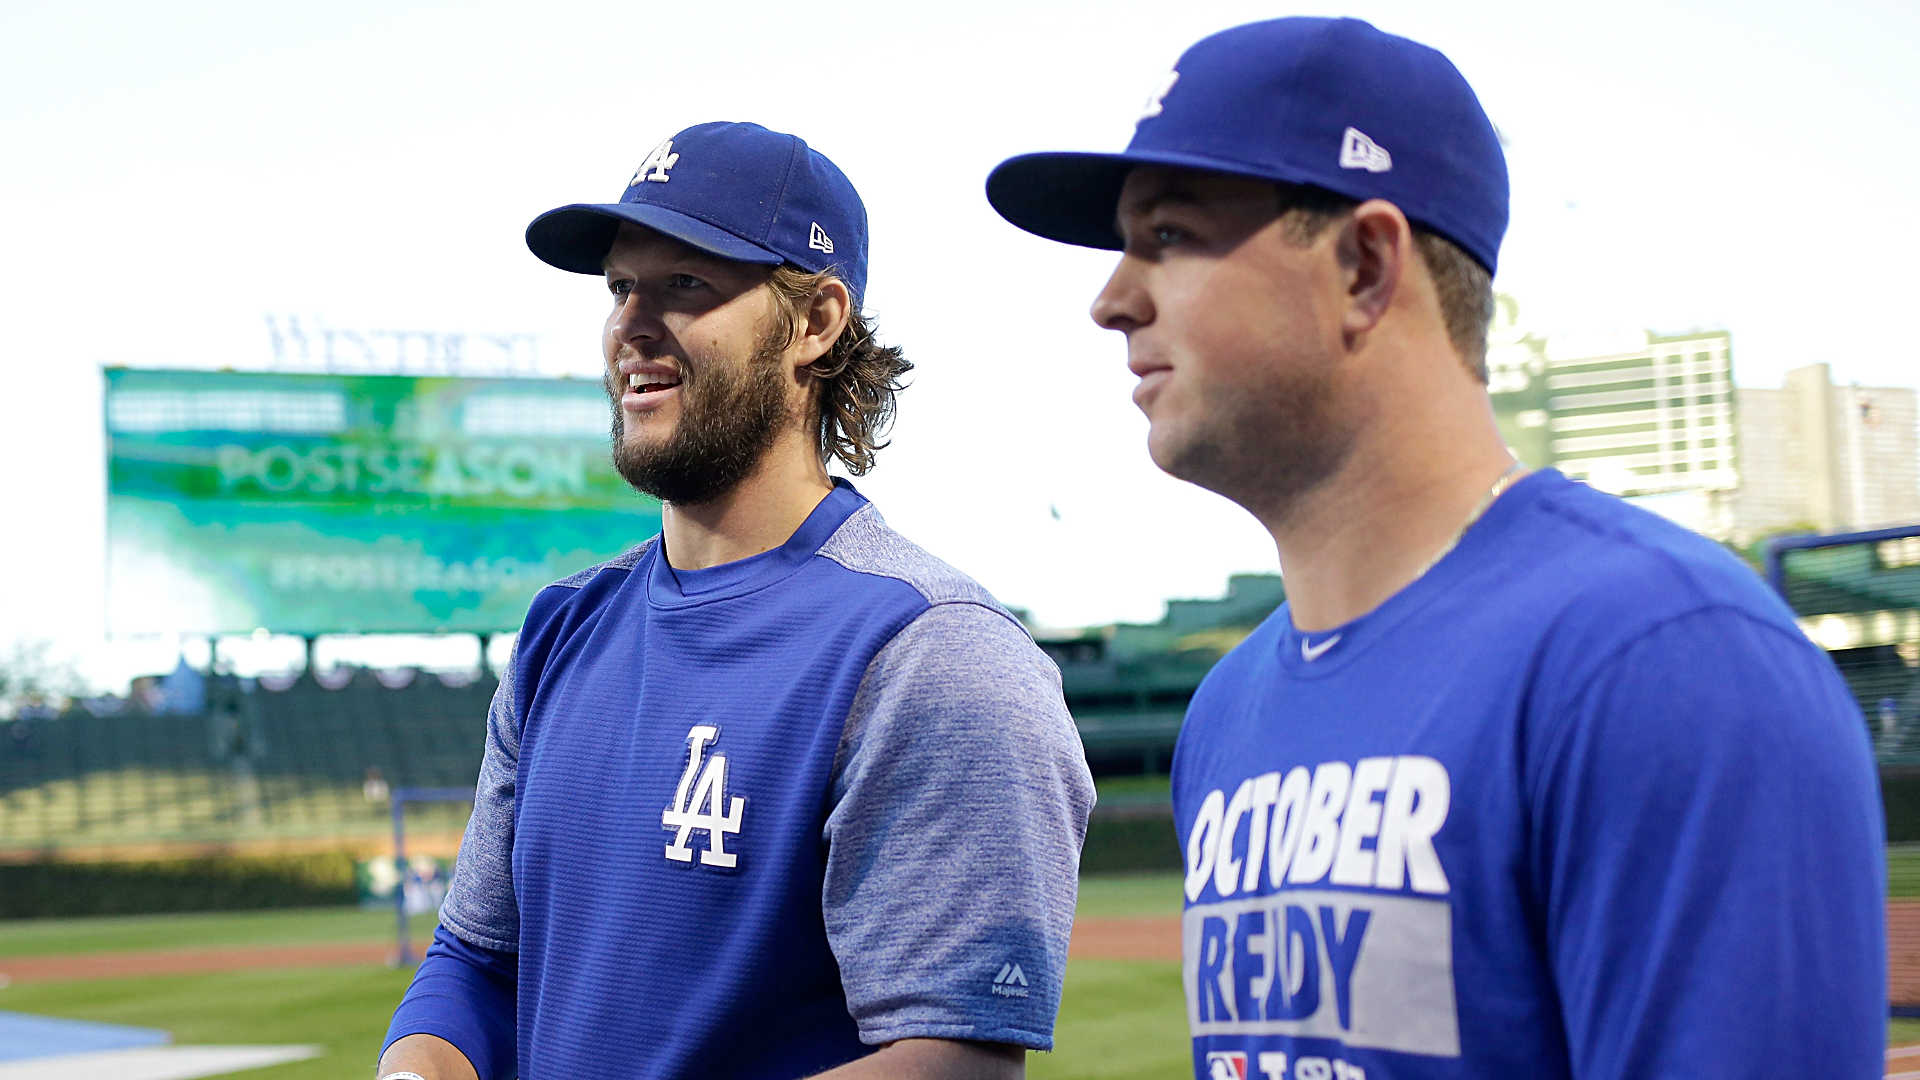 Kershaw-hill-102317-getty-ftrjpg_v53kyfxsfl5c15diizjinteyt